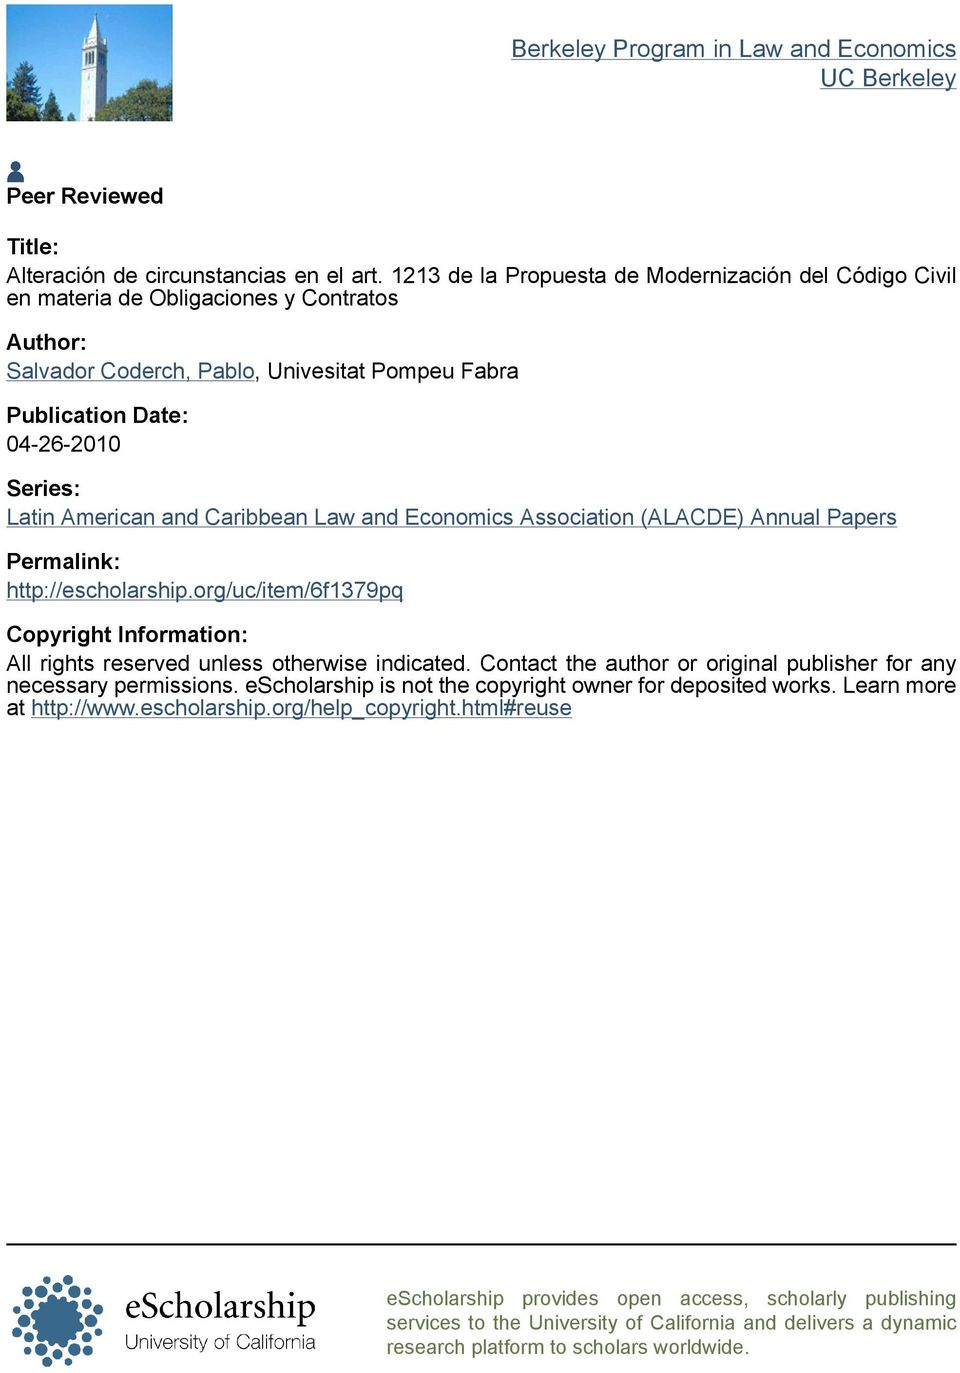 American and Caribbean Law and Economics Association (ALACDE) Annual Papers Permalink: http://escholarship.org/uc/item/6f1379pq Copyright Information: All rights reserved unless otherwise indicated.